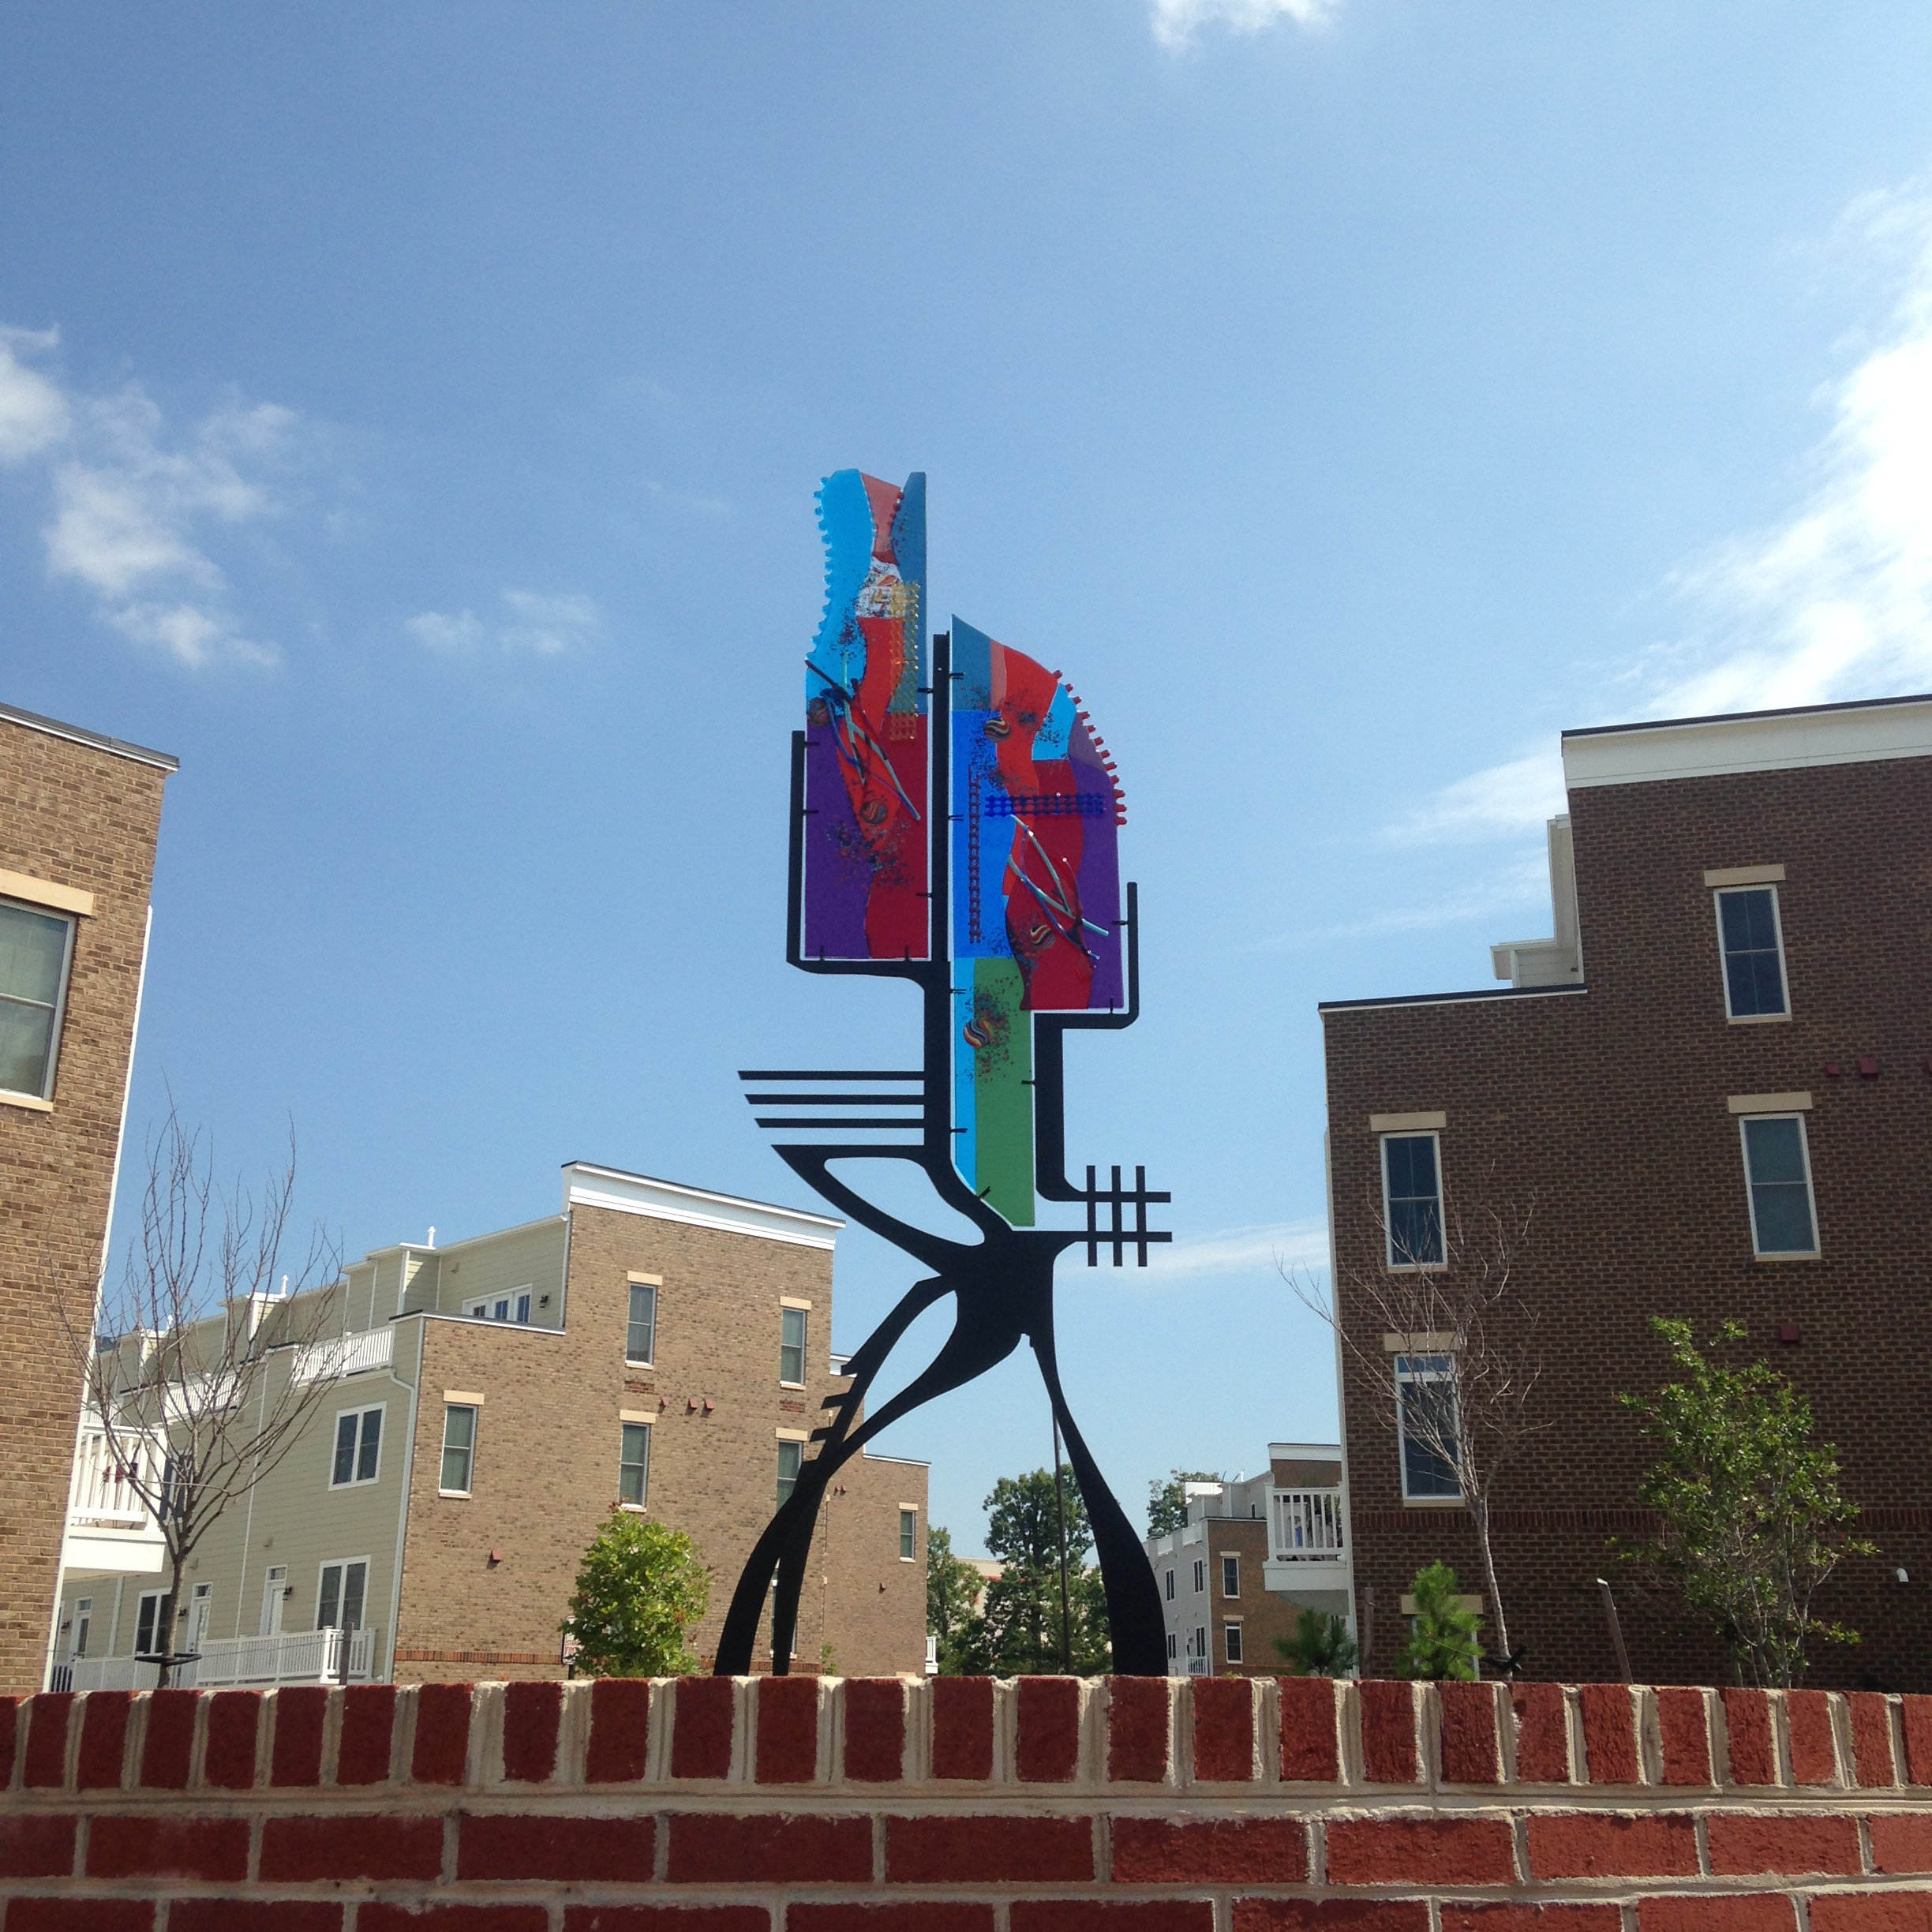 The delicate nature of the cast glass in this sculpture made this public art installation tricky.